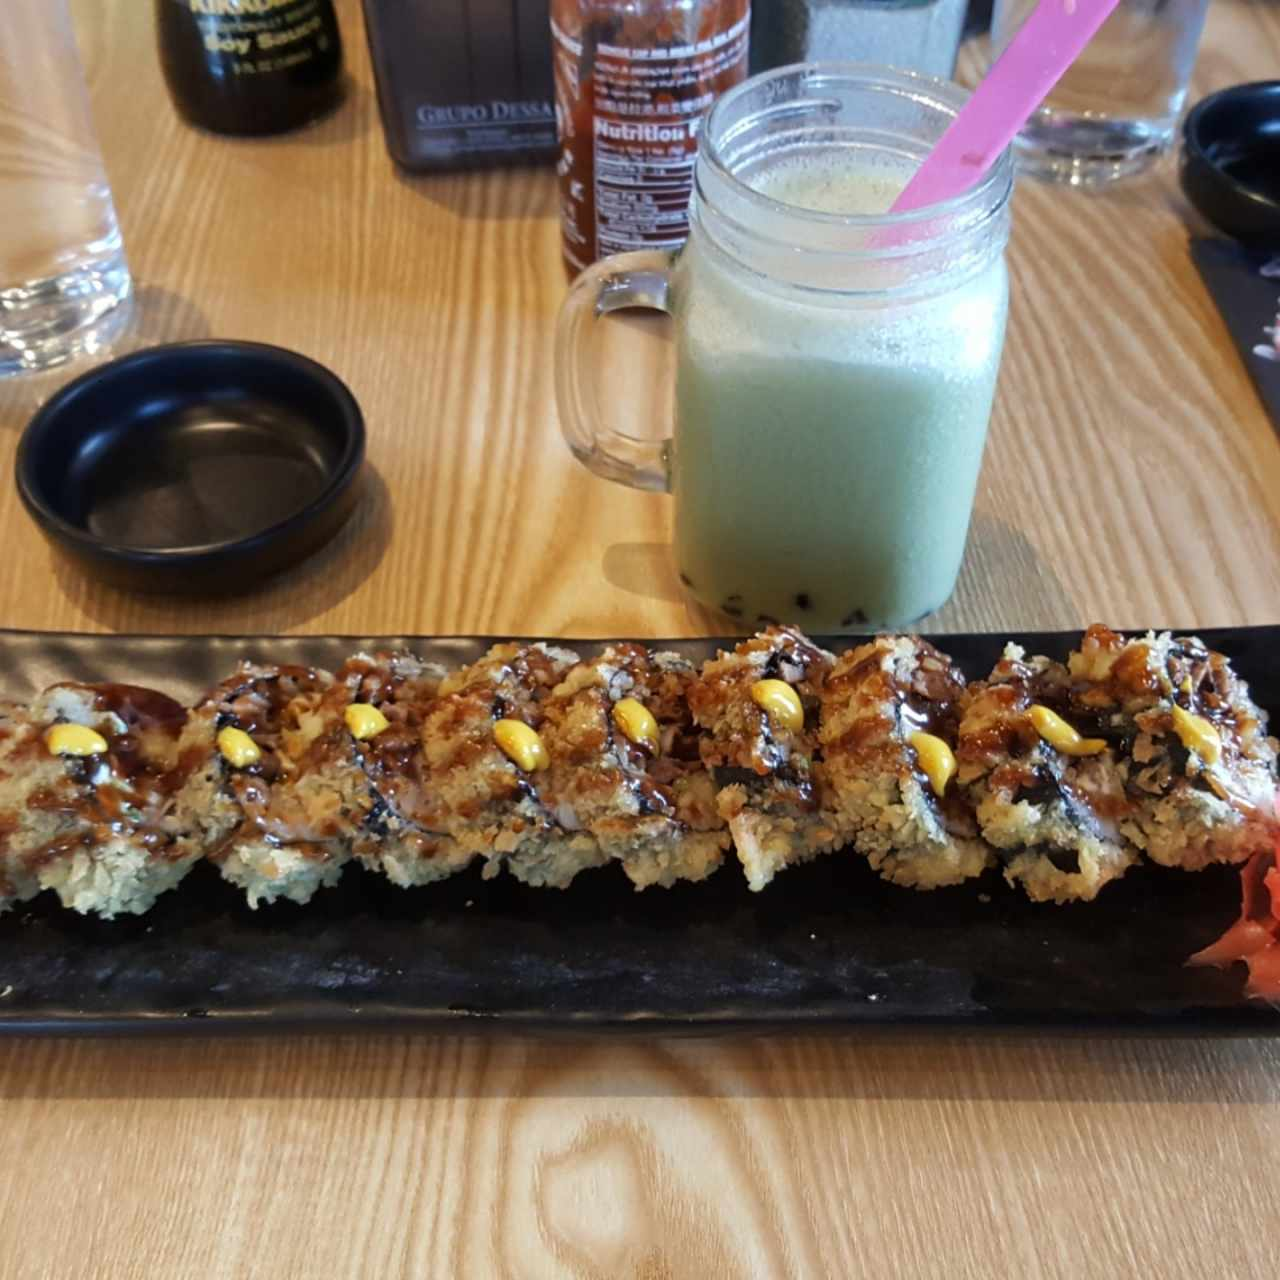 Niku roll + Bubble tea matcha